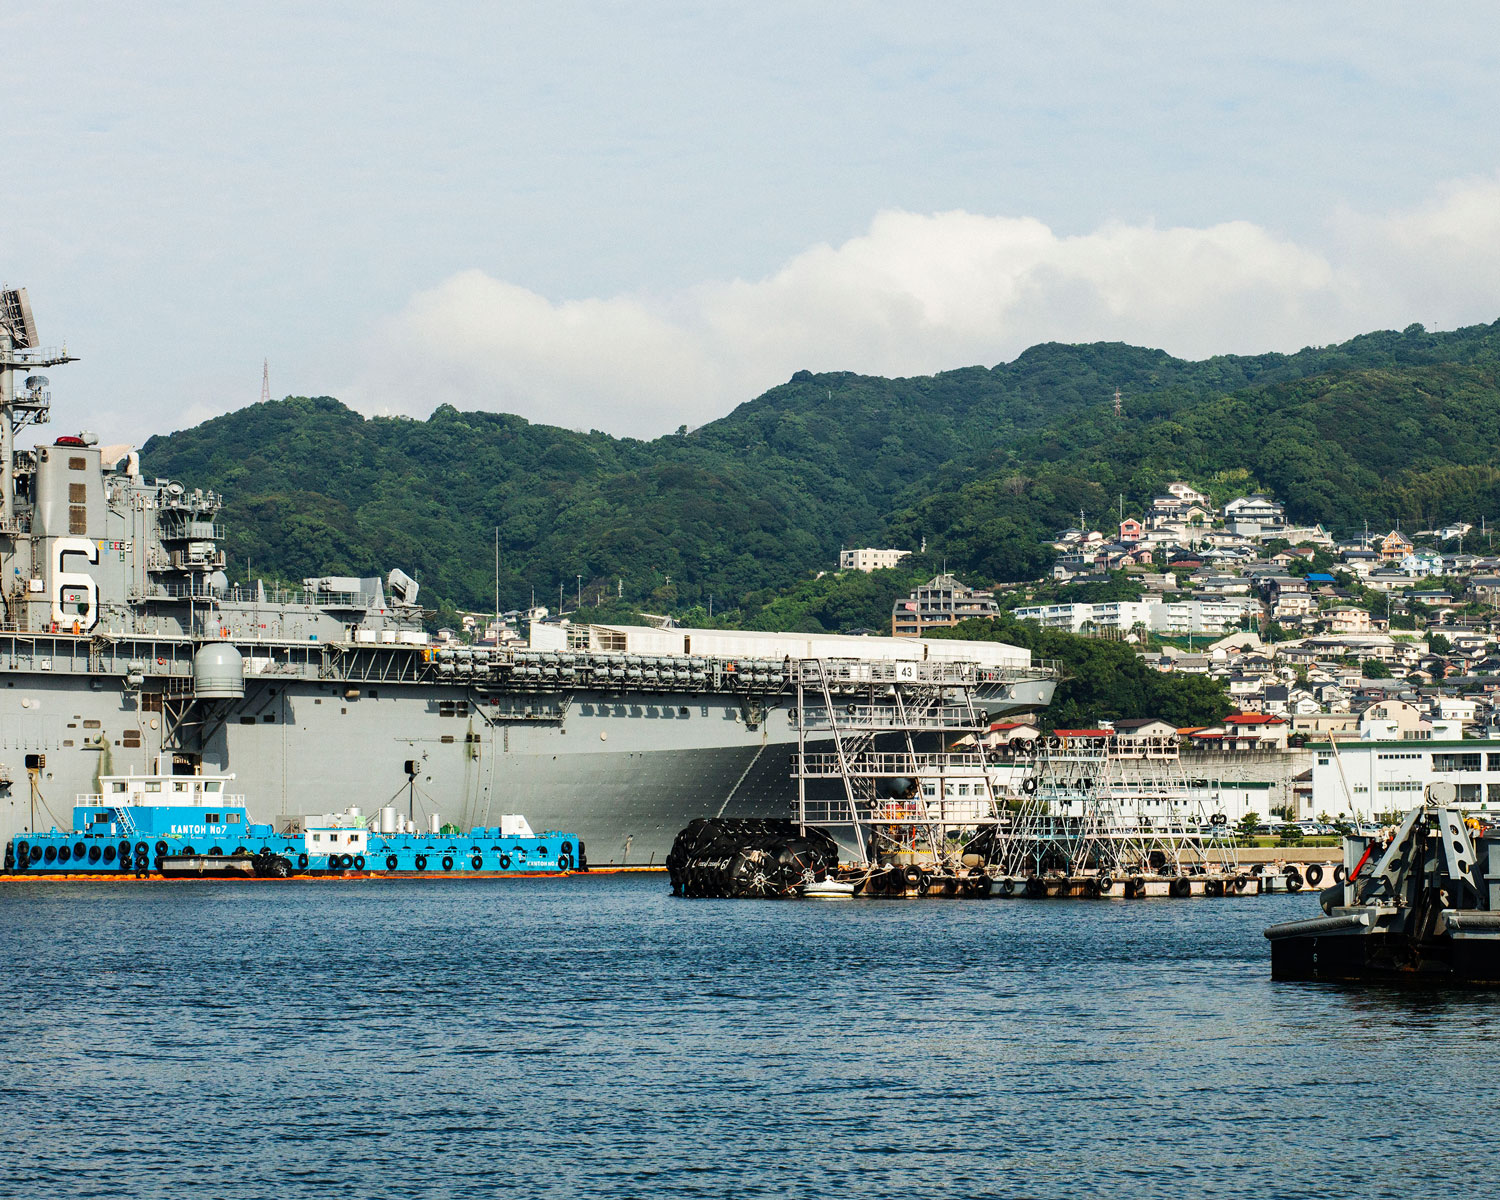 USS Bonhomme Richard in Juliet Basin (Sasebo, Japan 2014)